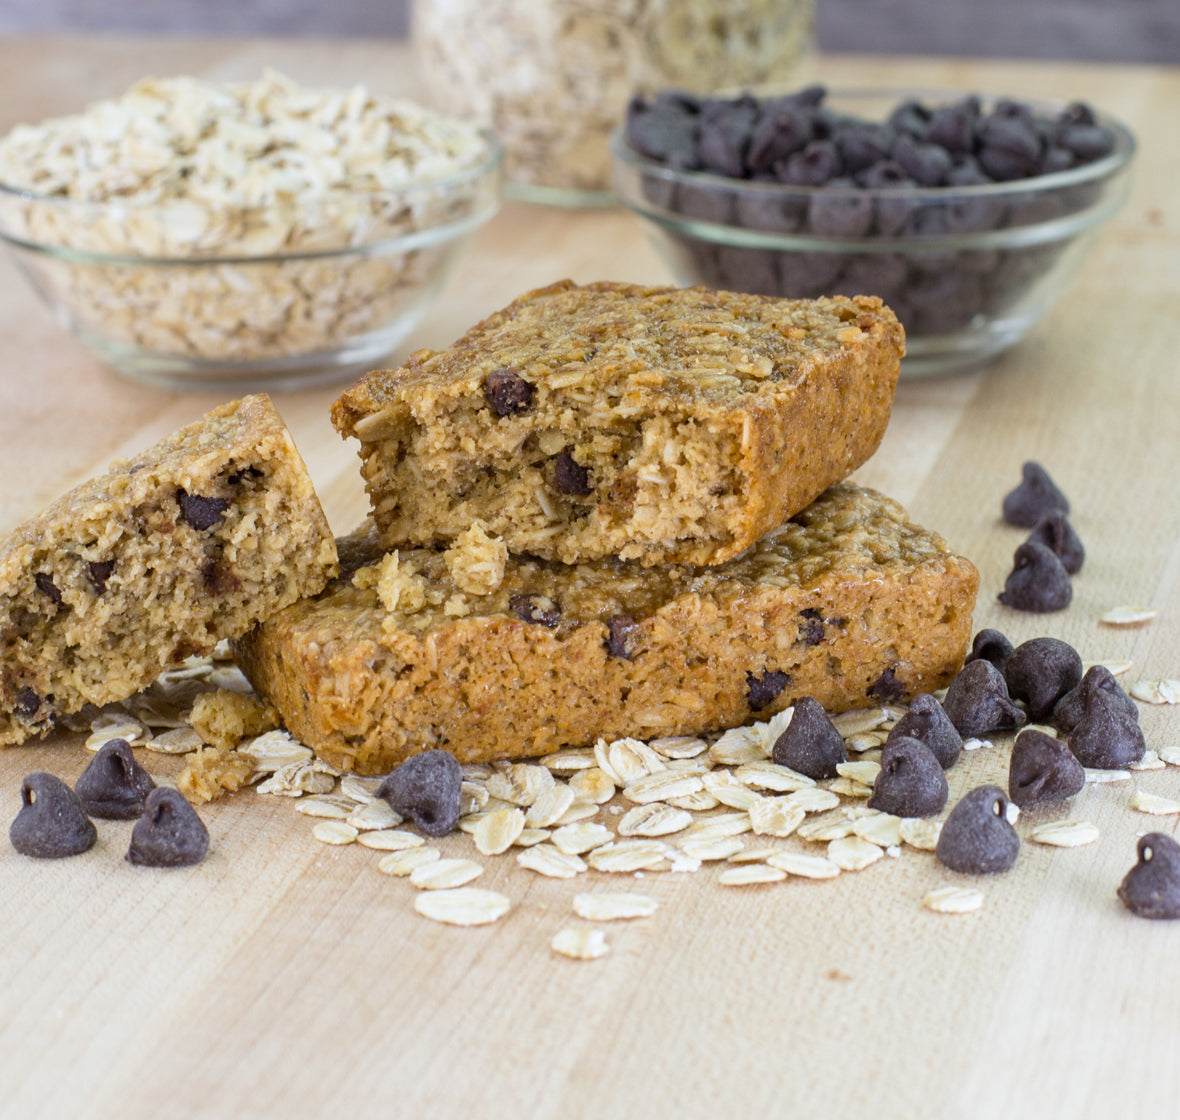 Chocolate Chip Oat Bar lifestyle image